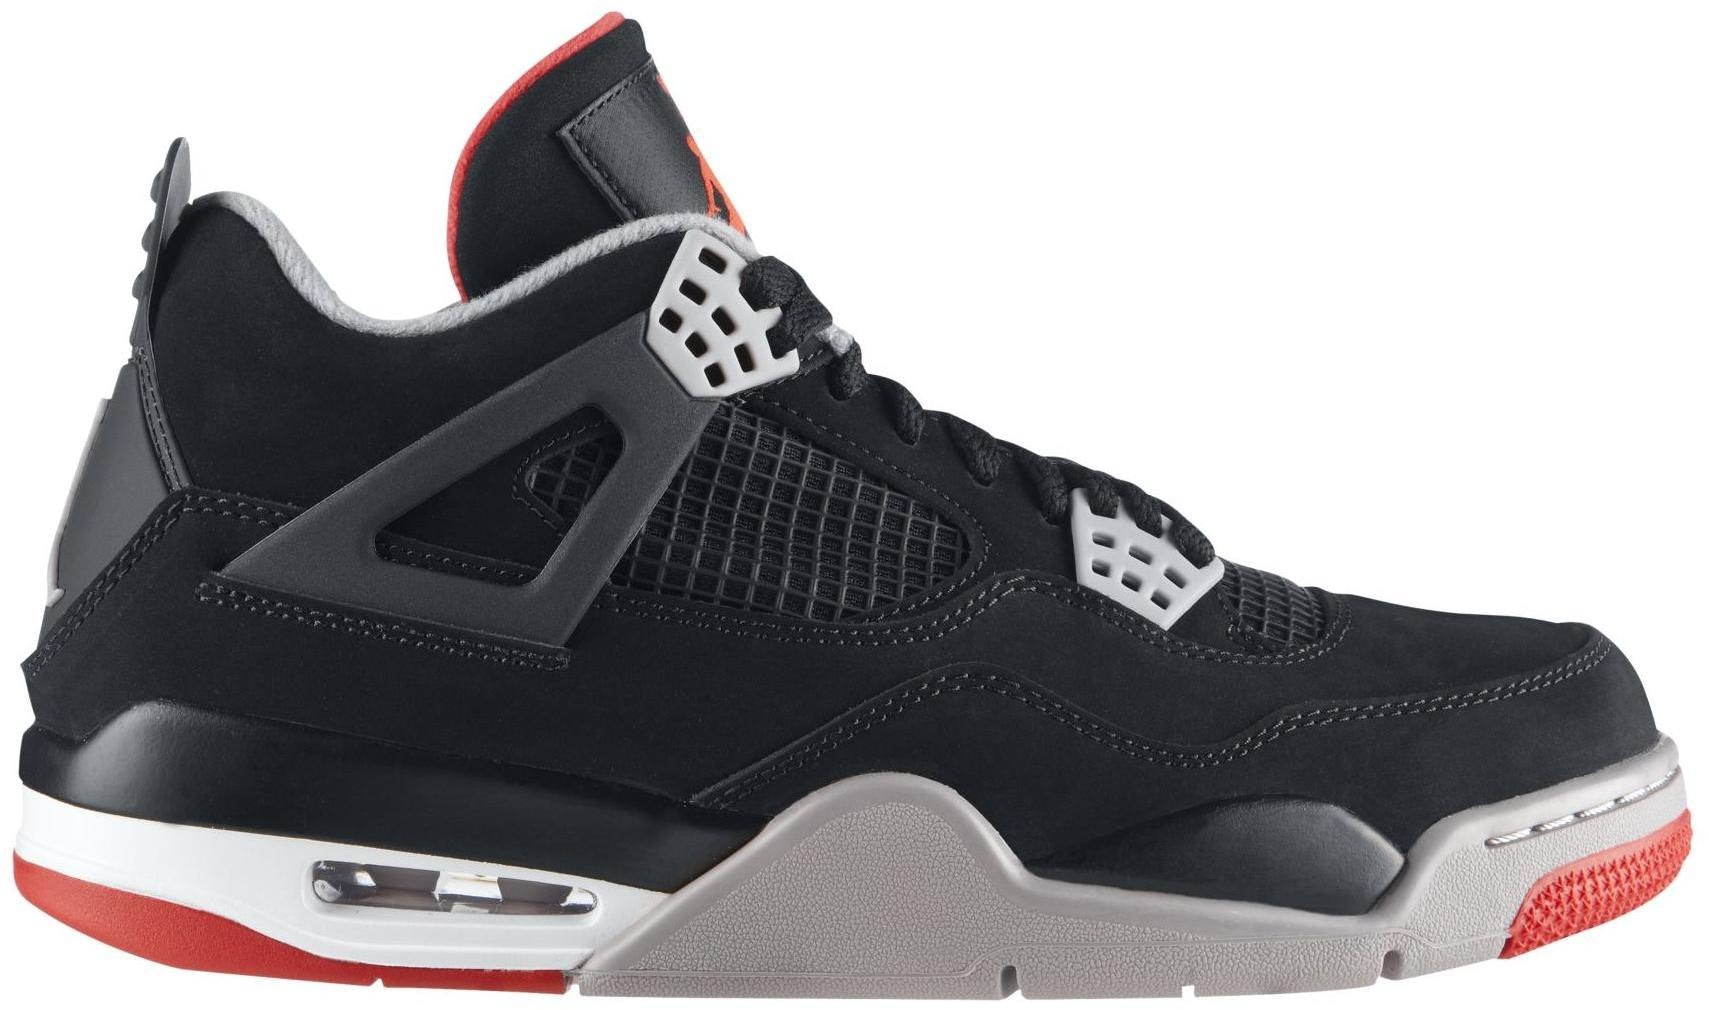 Jordan 4 Retro Black Cement (2012)